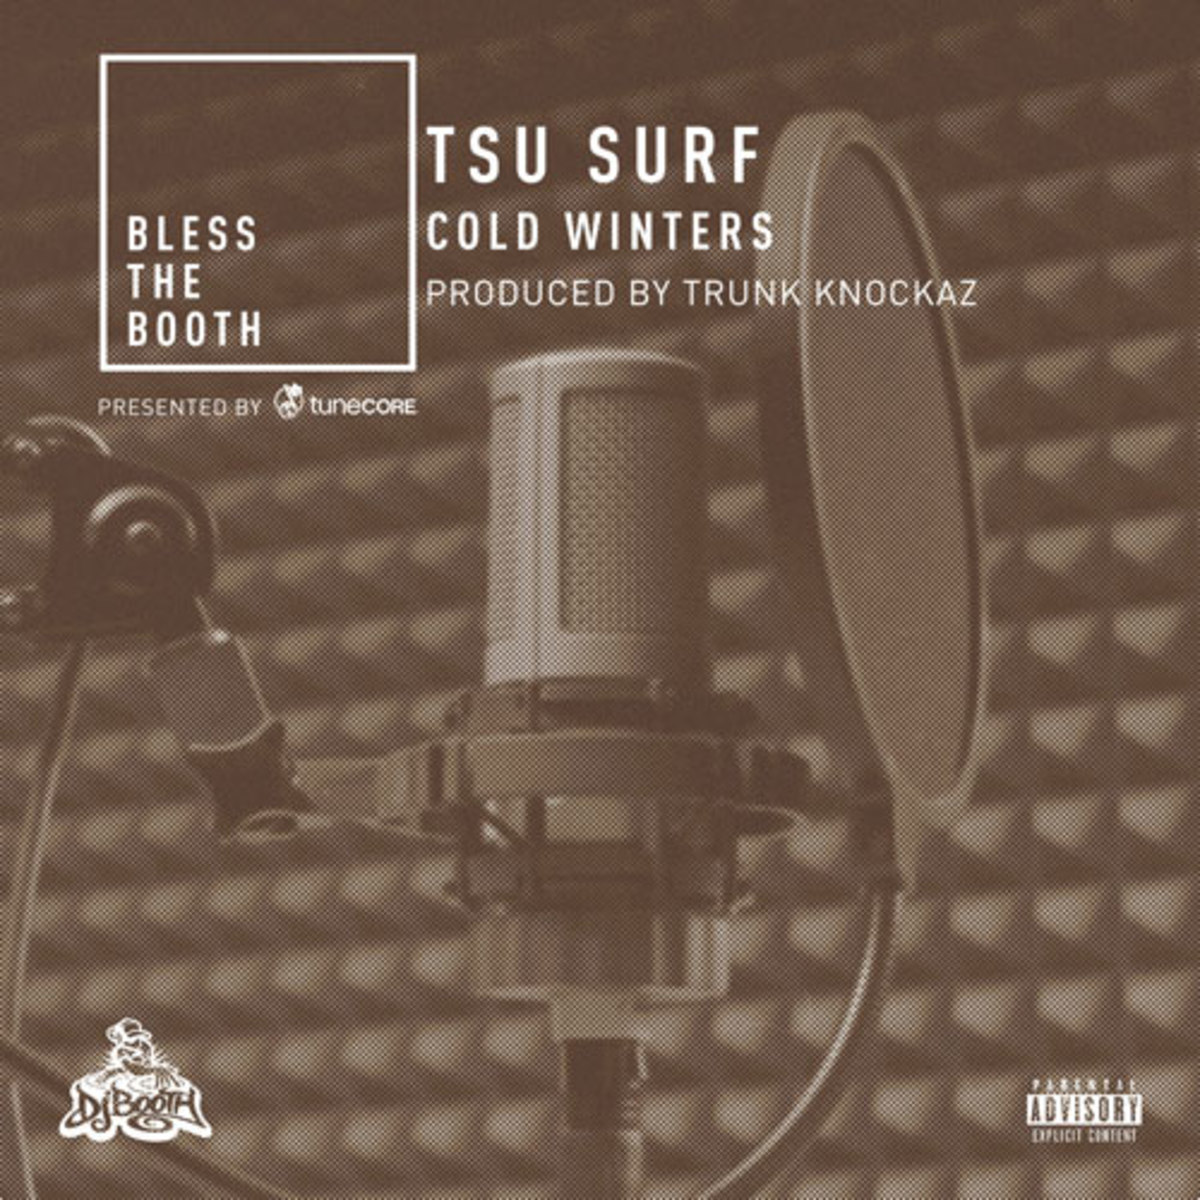 tsu-surf-cold-winters.jpg